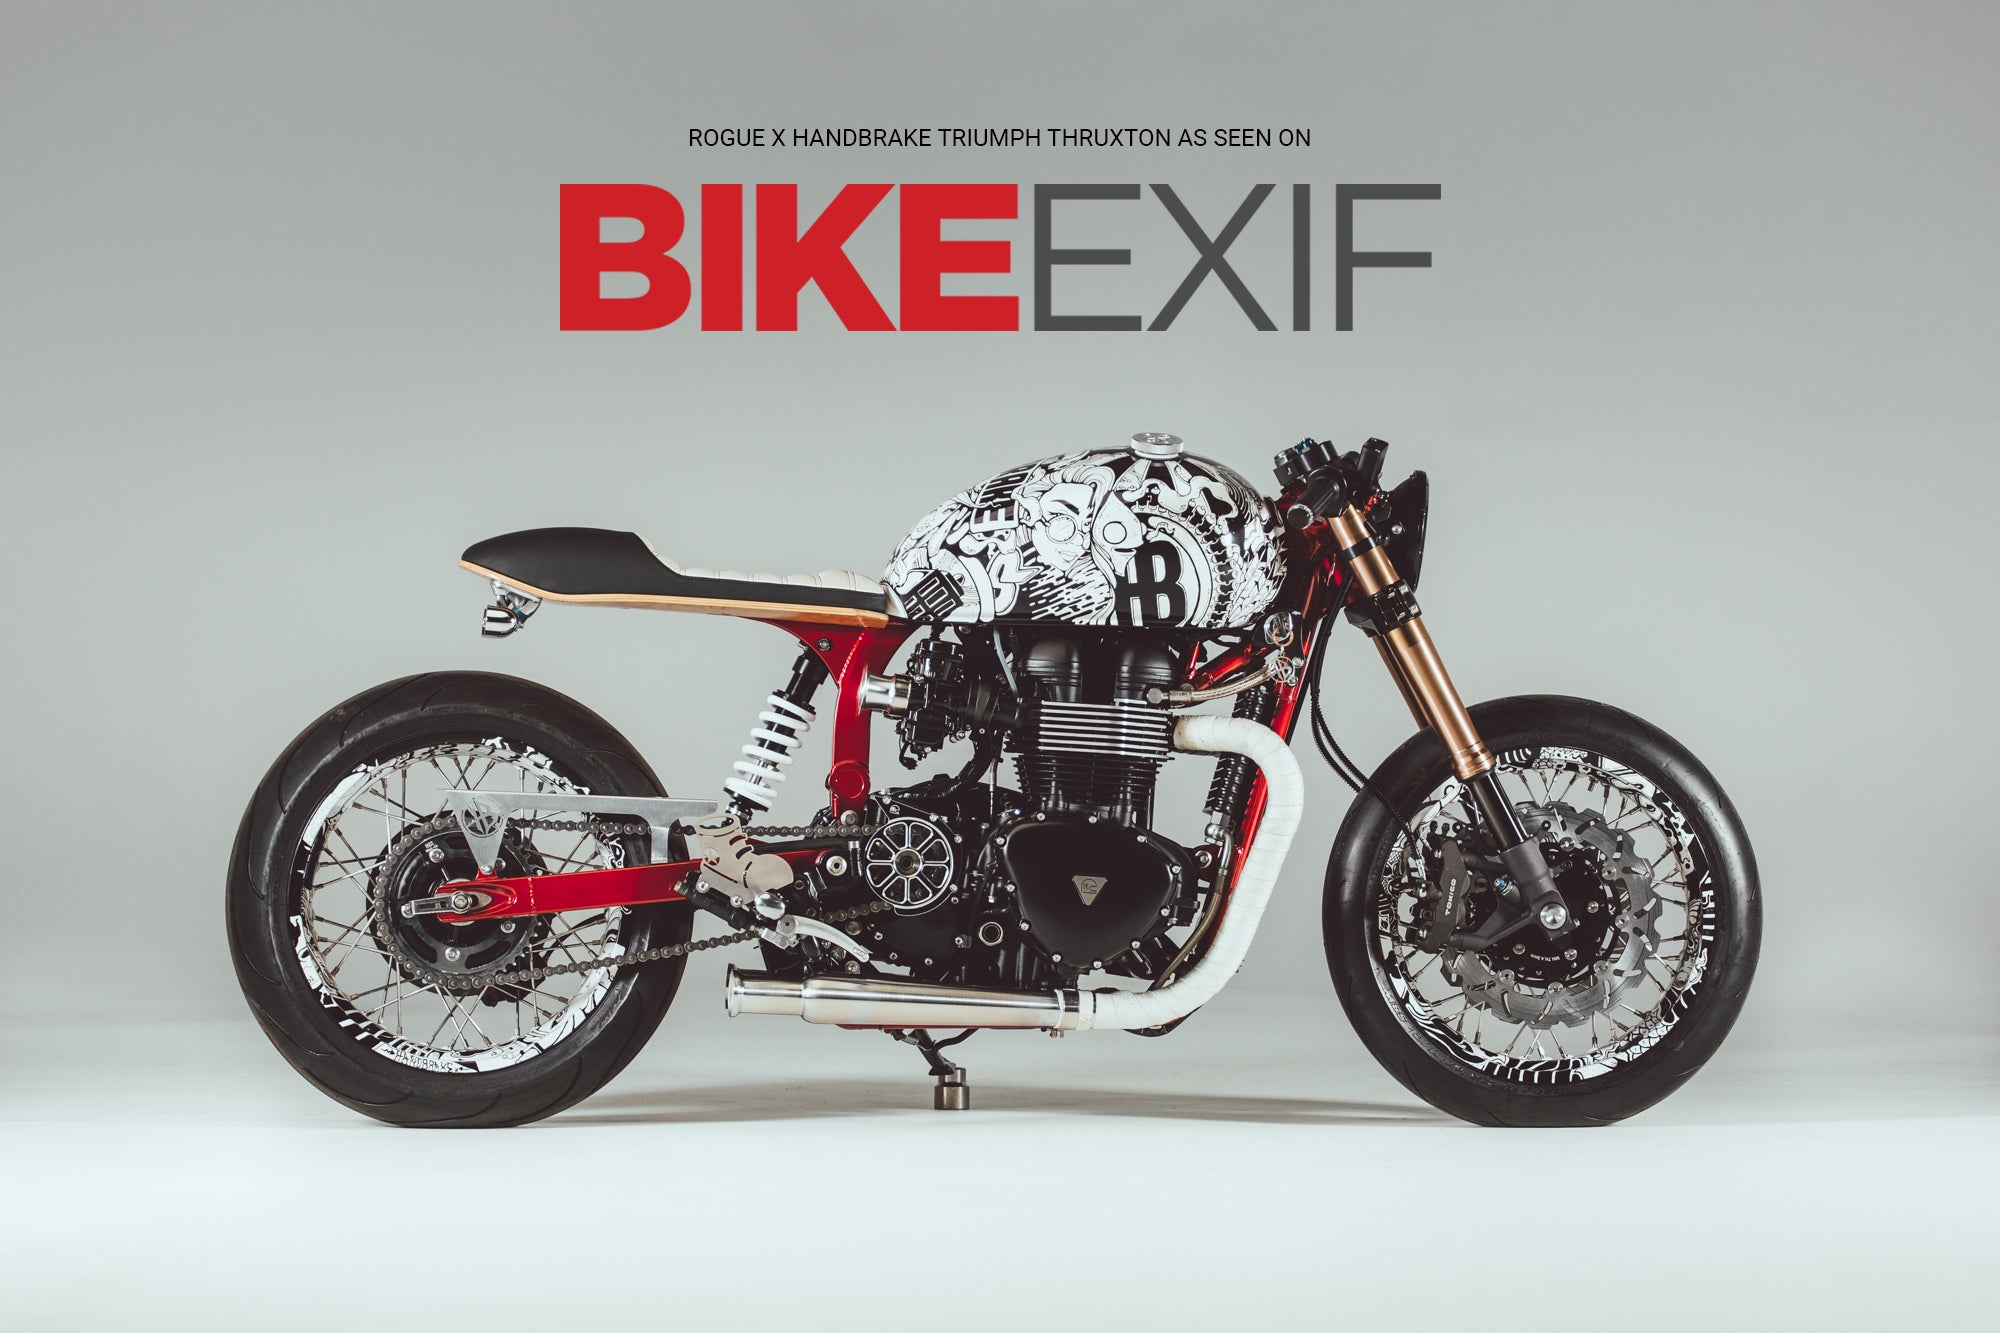 Rogue X HandBrake Triumph Thruxton features on Bike EXIF